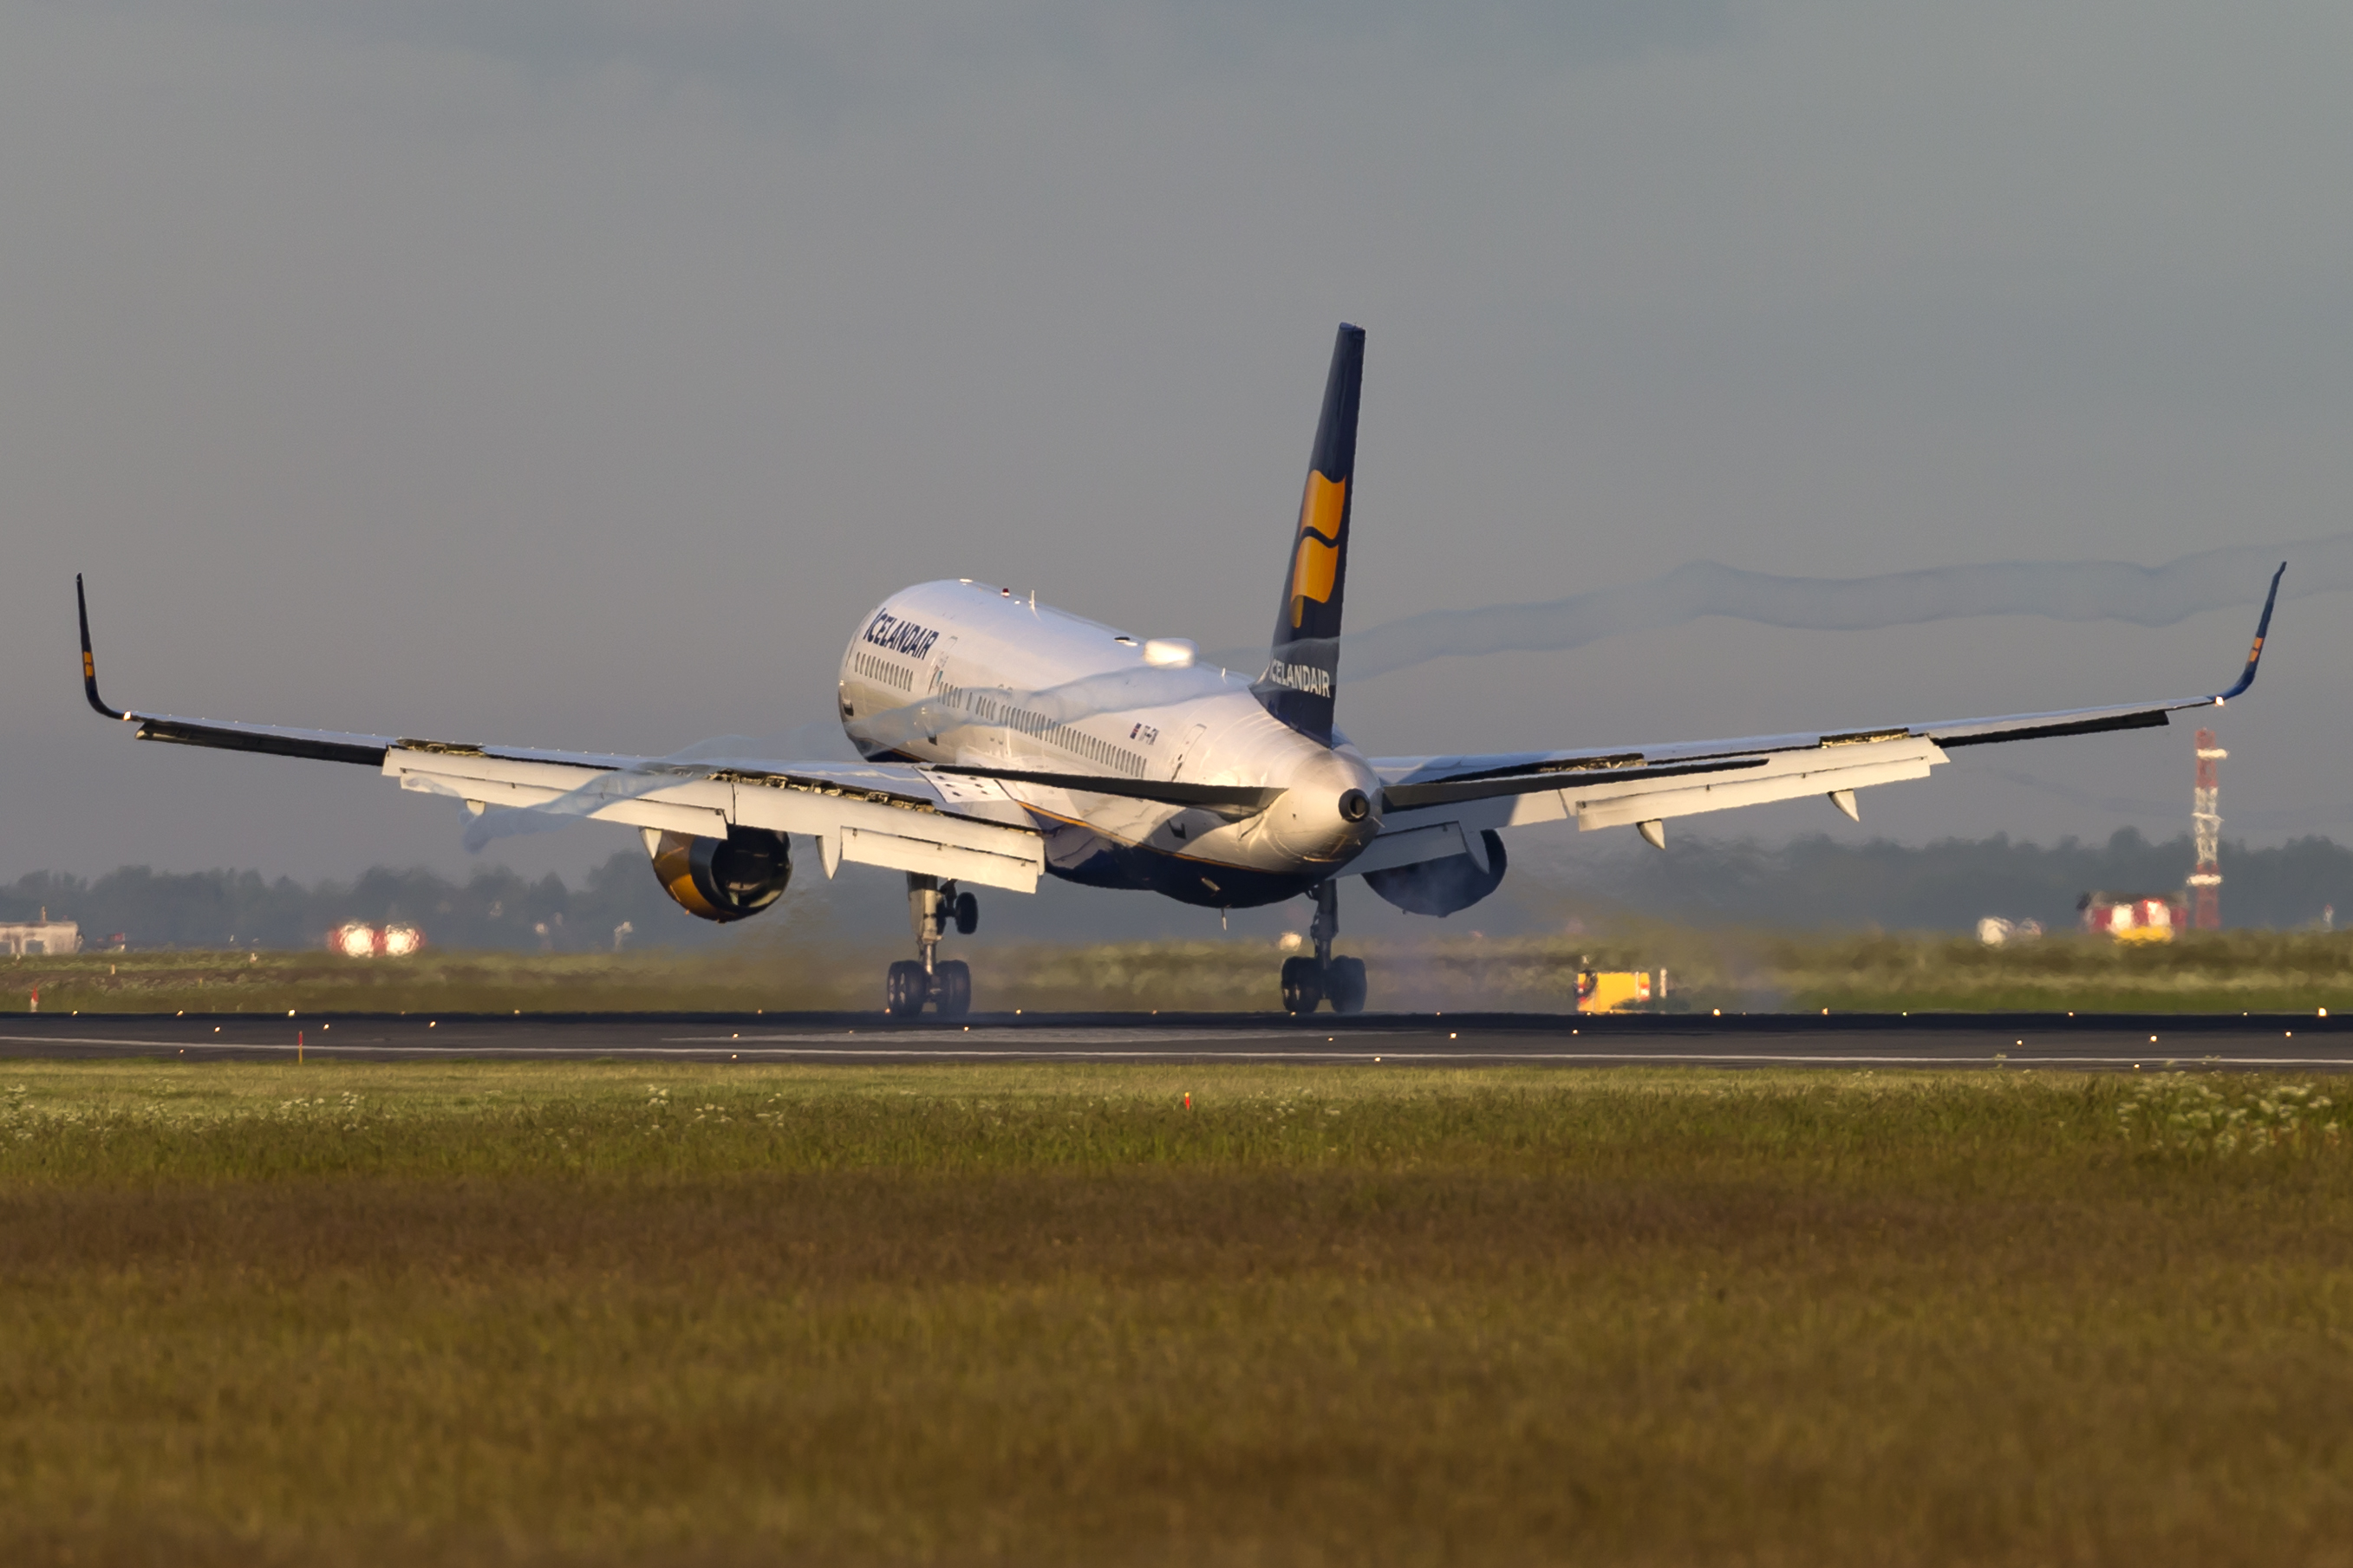 En Boeing 757-200 fra Icelandair. (Foto: © Thorbjørn Brunander Sund, Danish Aviation Photo)